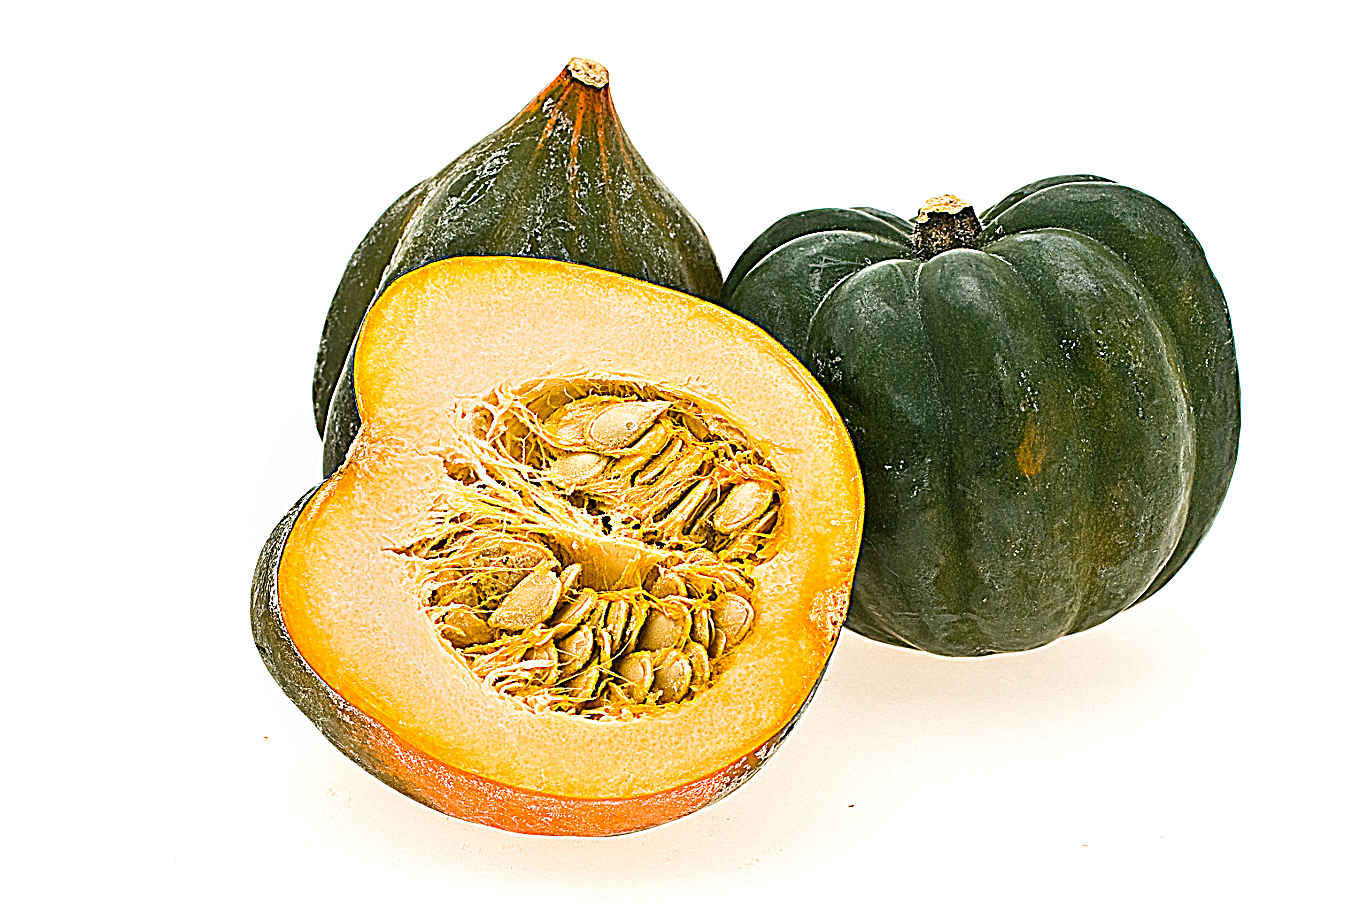 Acorn Squash: A new way to prepare this winter side dish